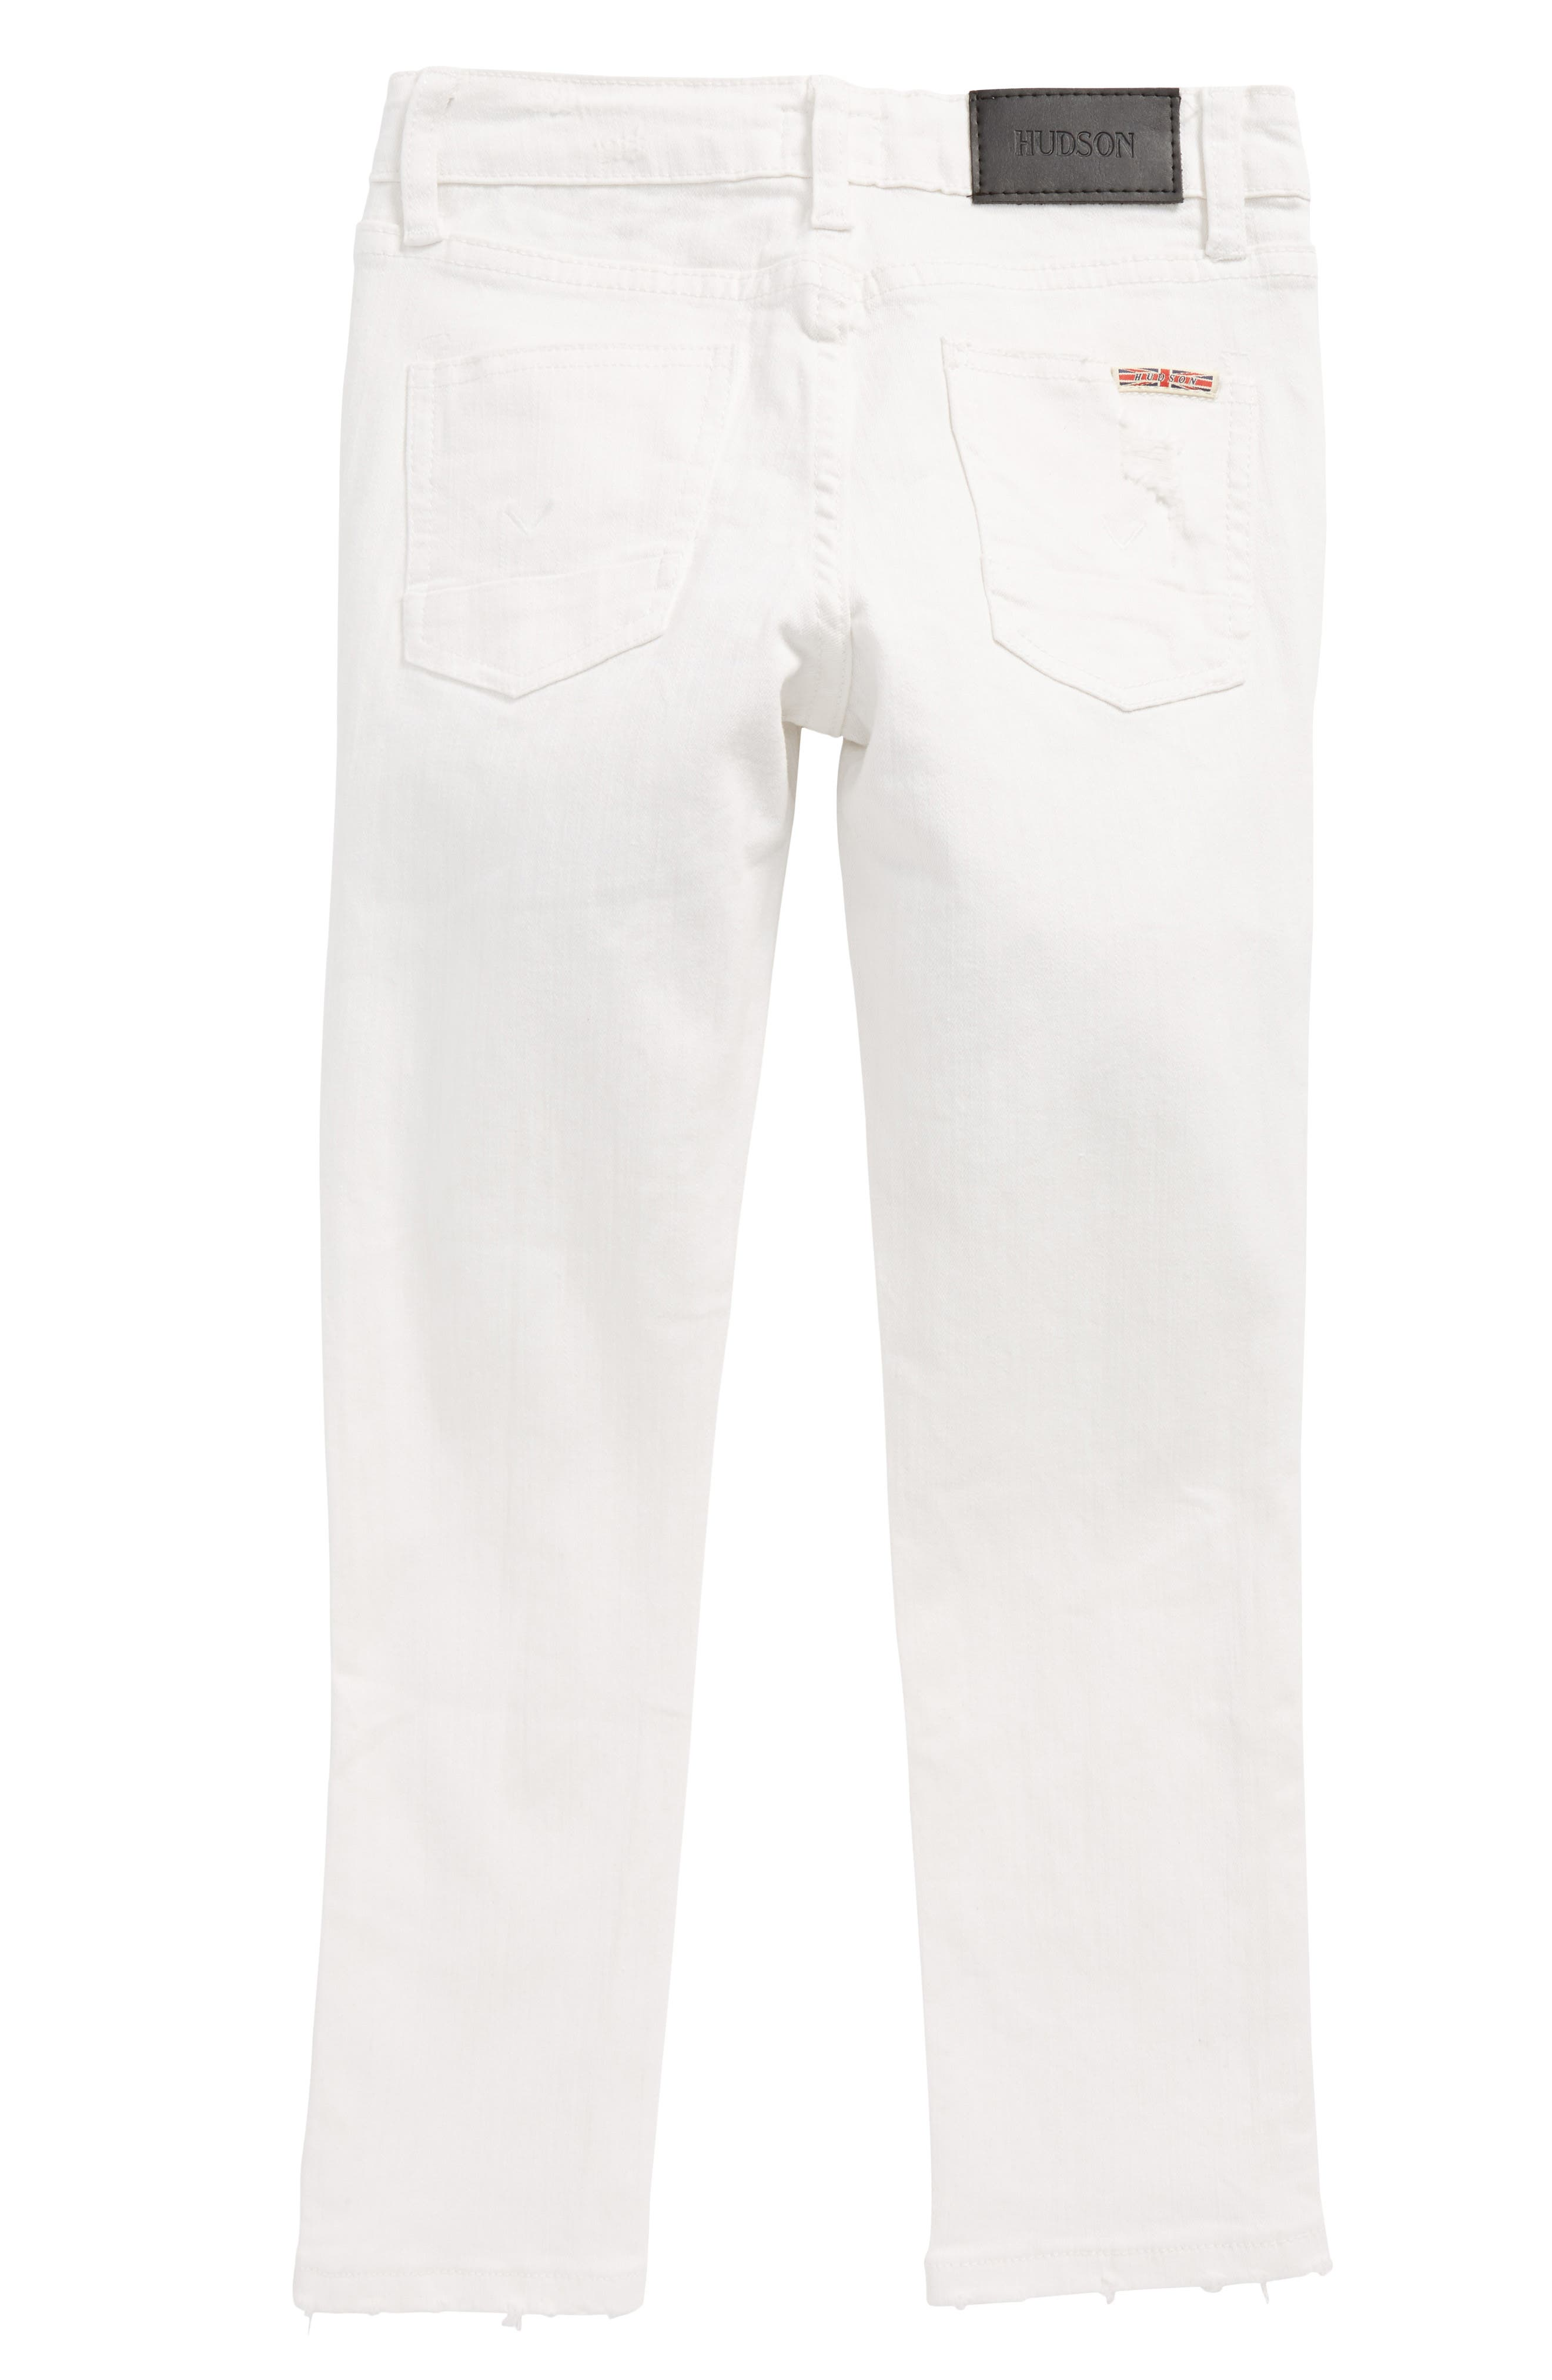 Jagger Slim Straight Leg Jeans,                             Alternate thumbnail 2, color,                             Washed Out